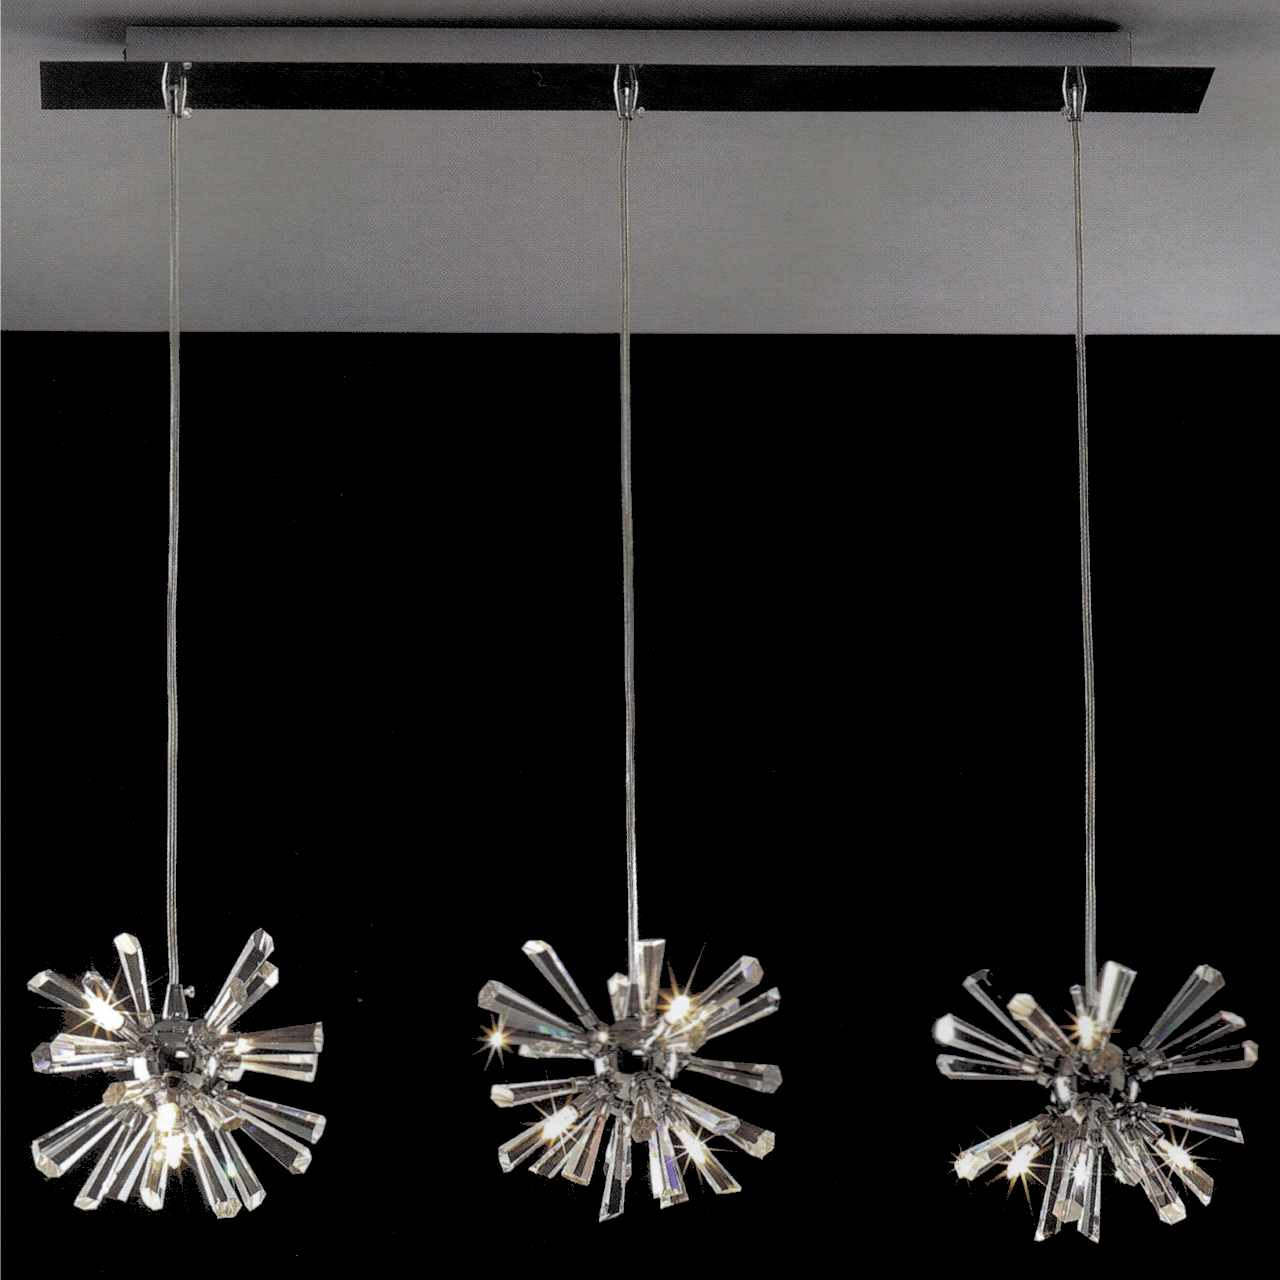 Brizzo lighting stores 28 radiante modern crystal triple pendants picture of 28 radiante modern crystal triple pendants polished chrome 12 lights mozeypictures Images